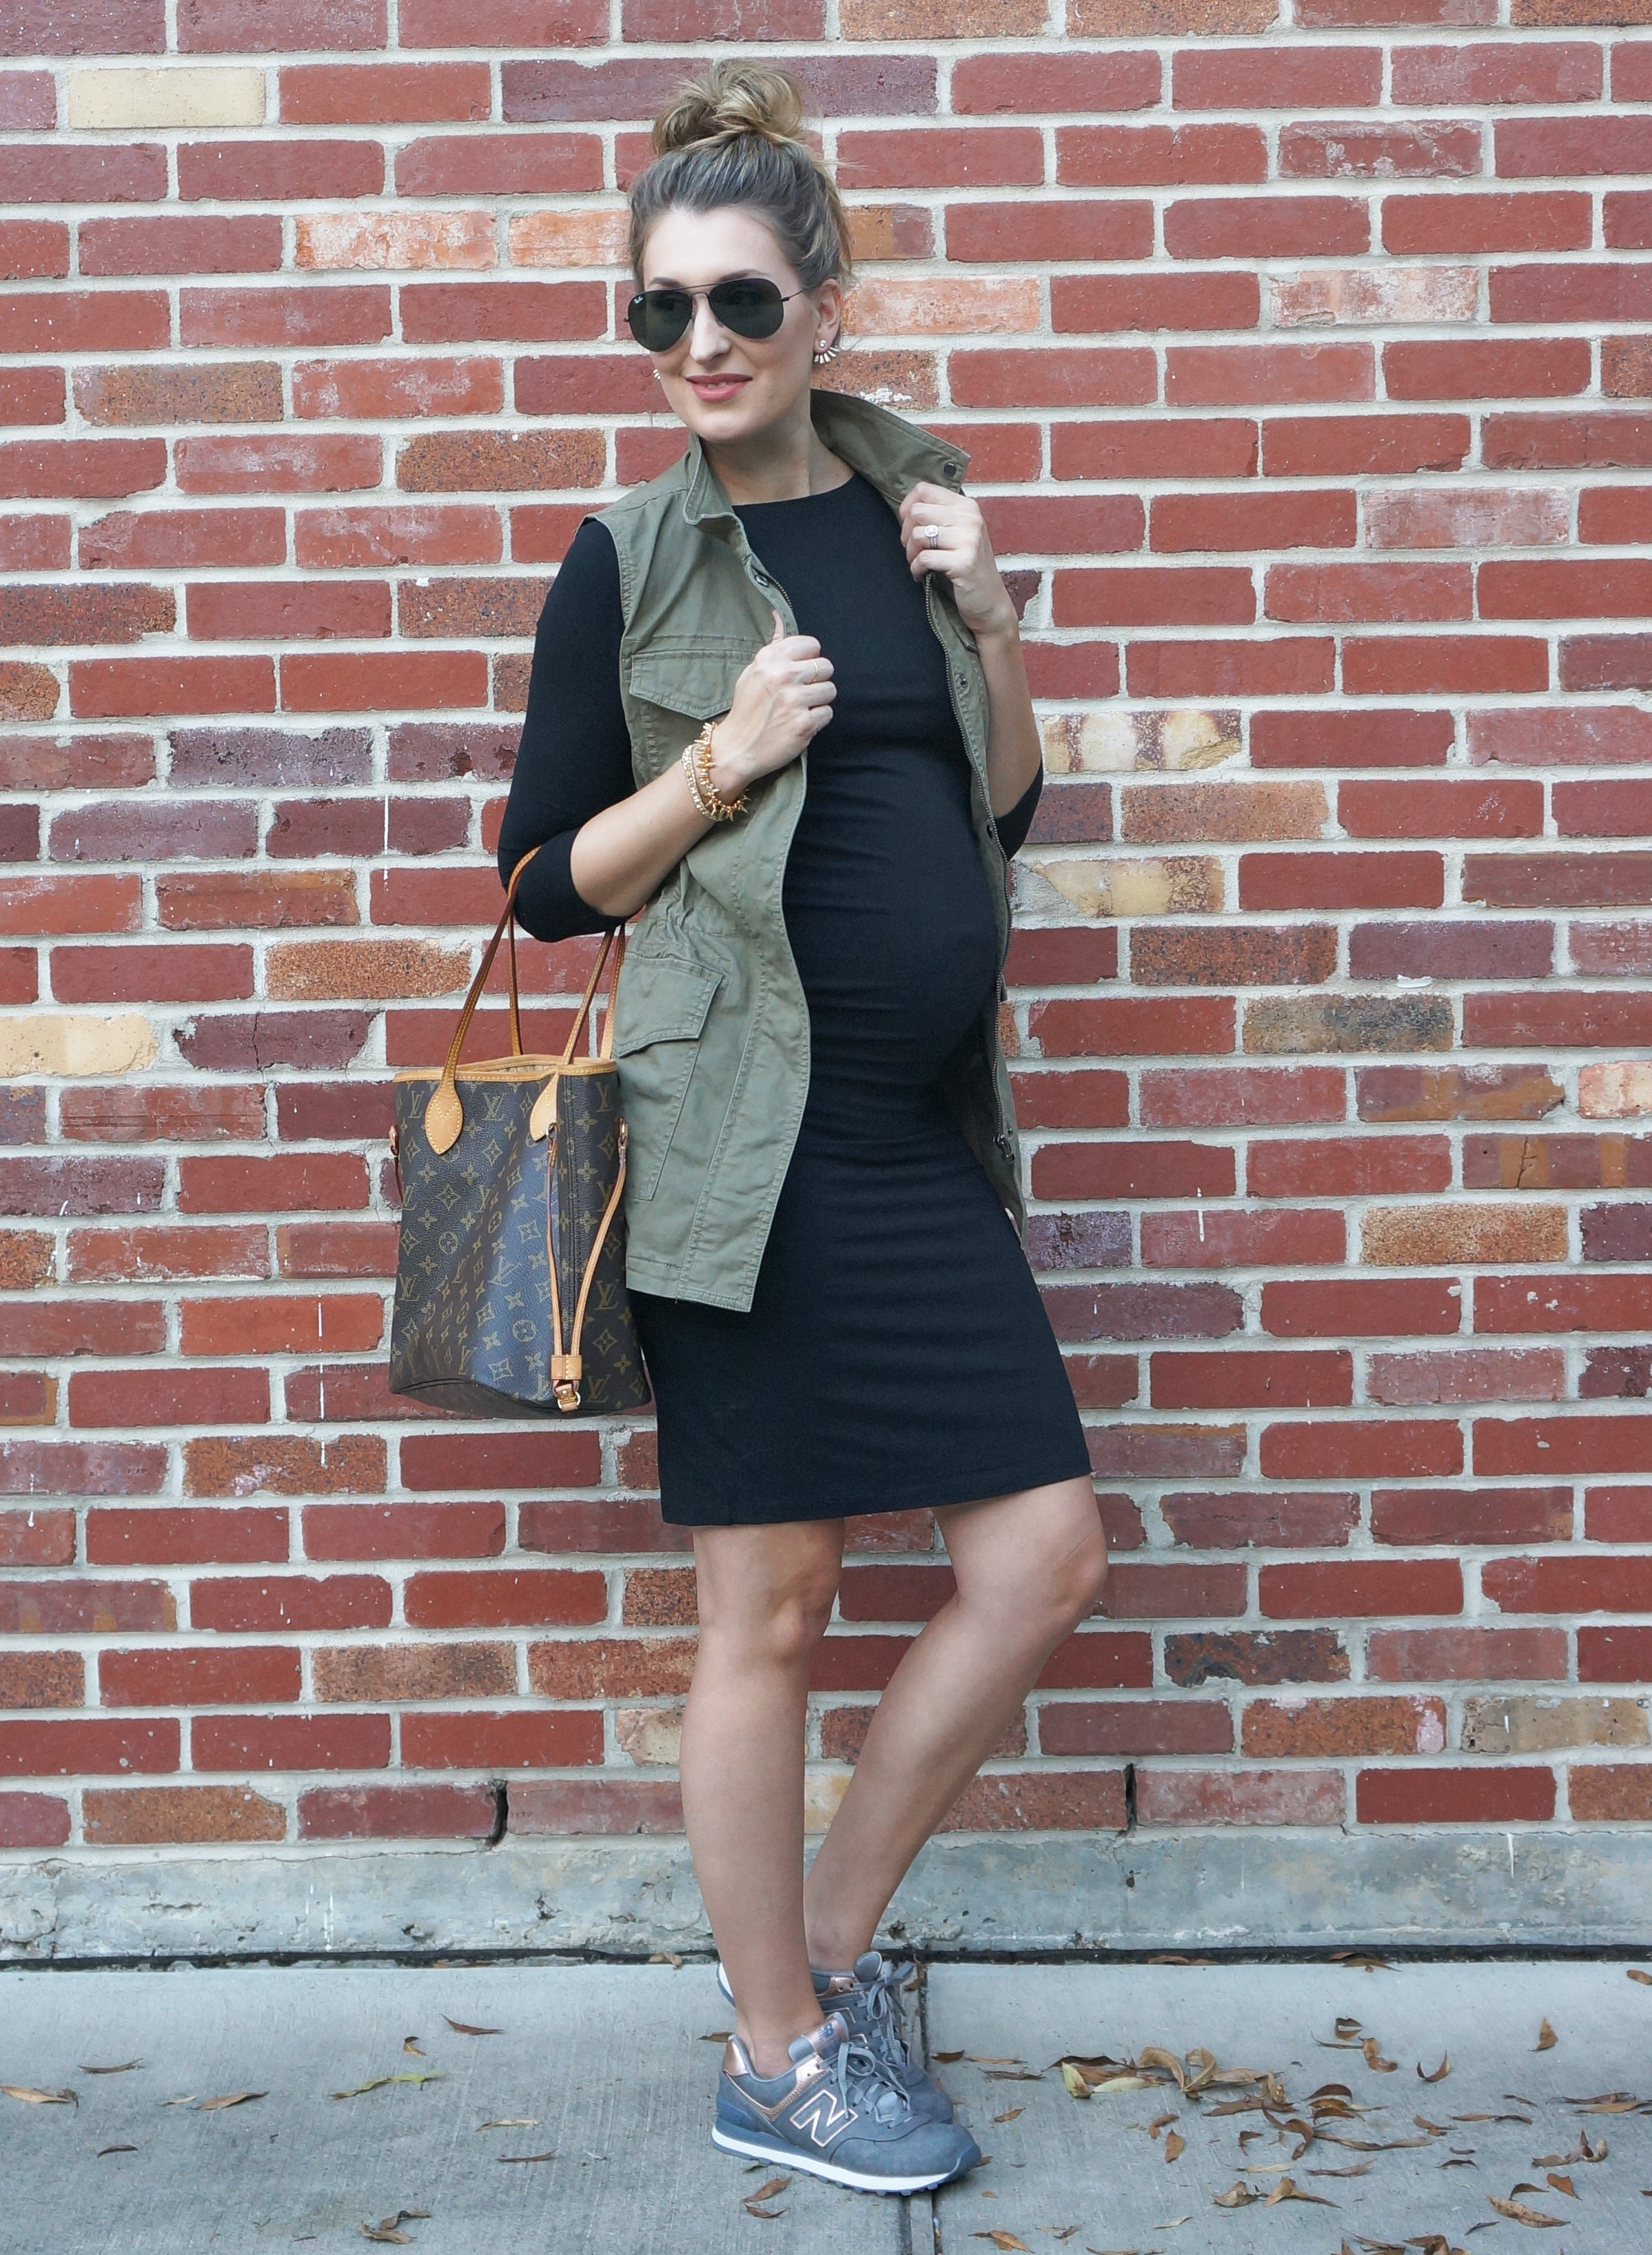 Banana republic maternity dresses choice image braidsmaid dress banana republic maternity dresses image collections braidsmaid trying something new wear when dress seraphine maternity vest ombrellifo Choice Image